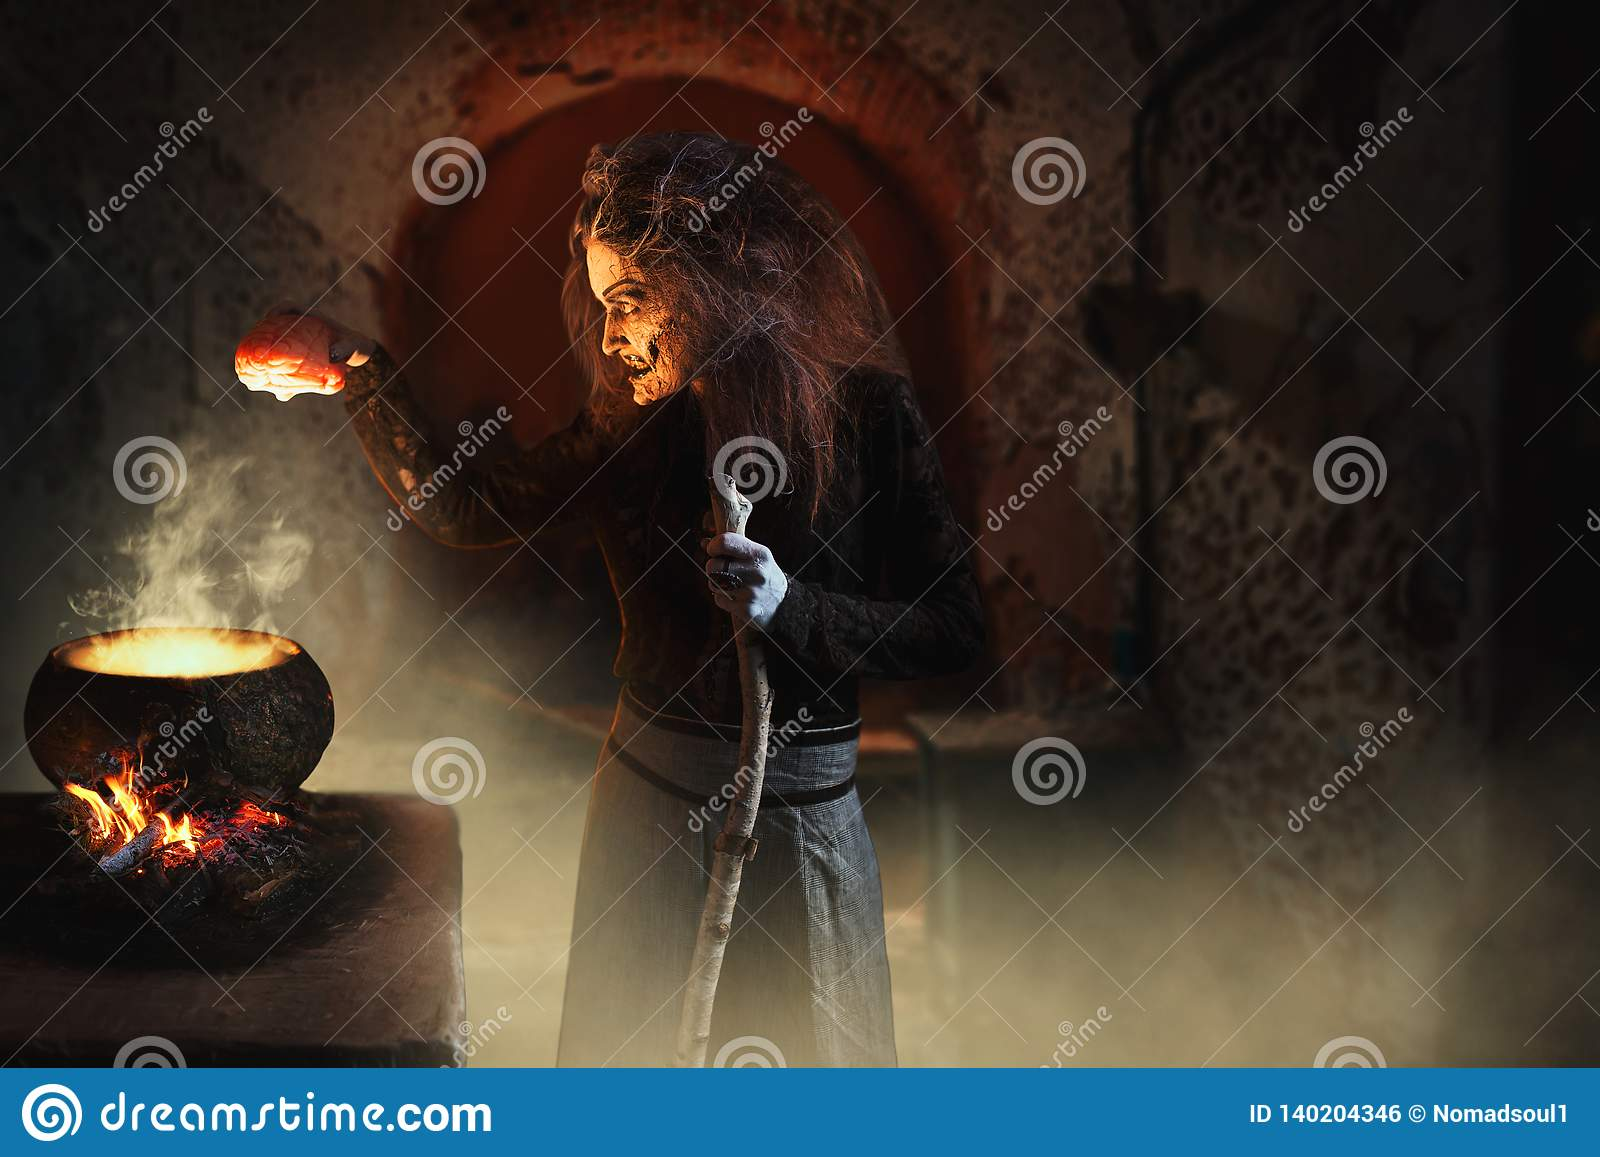 Witch Reads Spell Over Pot With Human Body Parts Stock Photo - Image